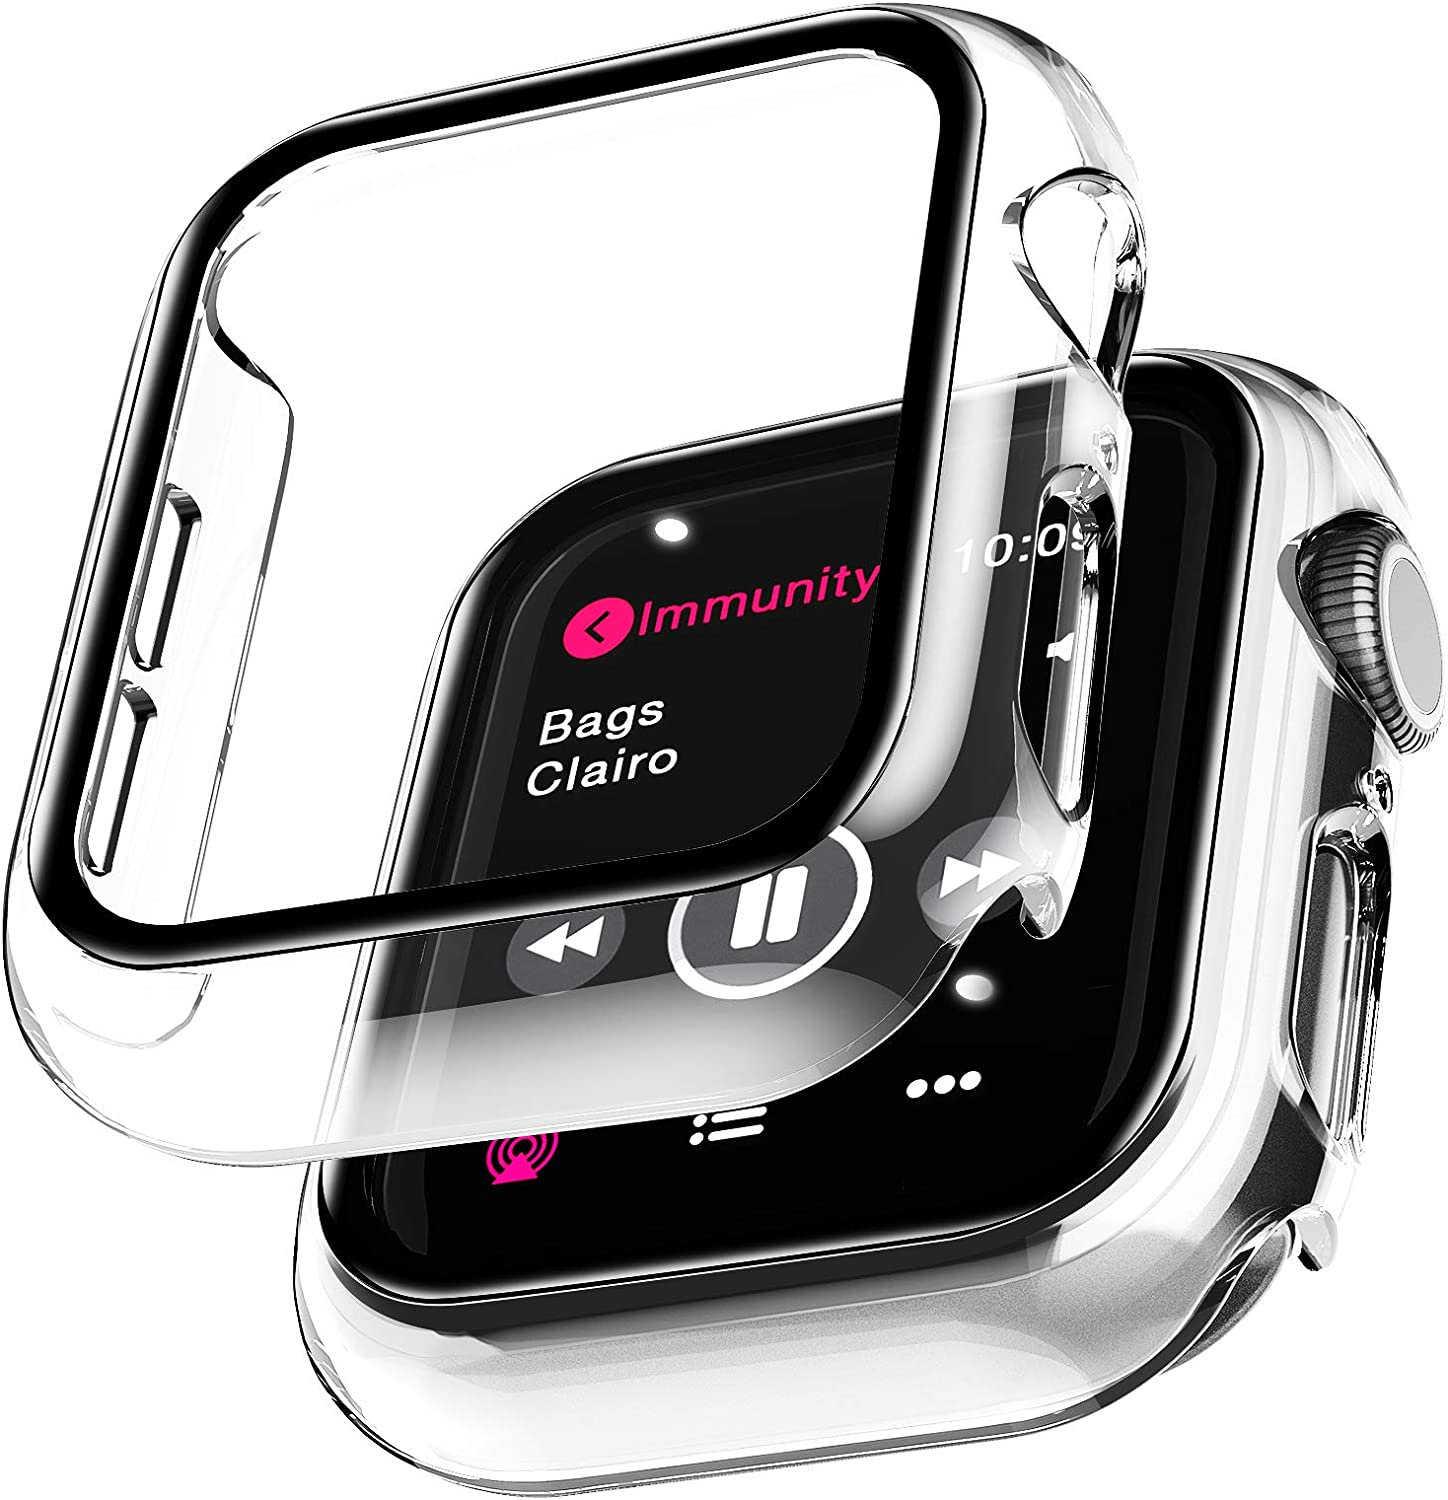 2 Pack LϟK Case for Apple Watch 40mm Series 6/5/4/SE Built-in Tempered Glass Screen Protector, All-Around Ultra-Thin Bumper Full Cover Hard PC Protective Case for iWatch 4/5/6/SE 40MM - Clear